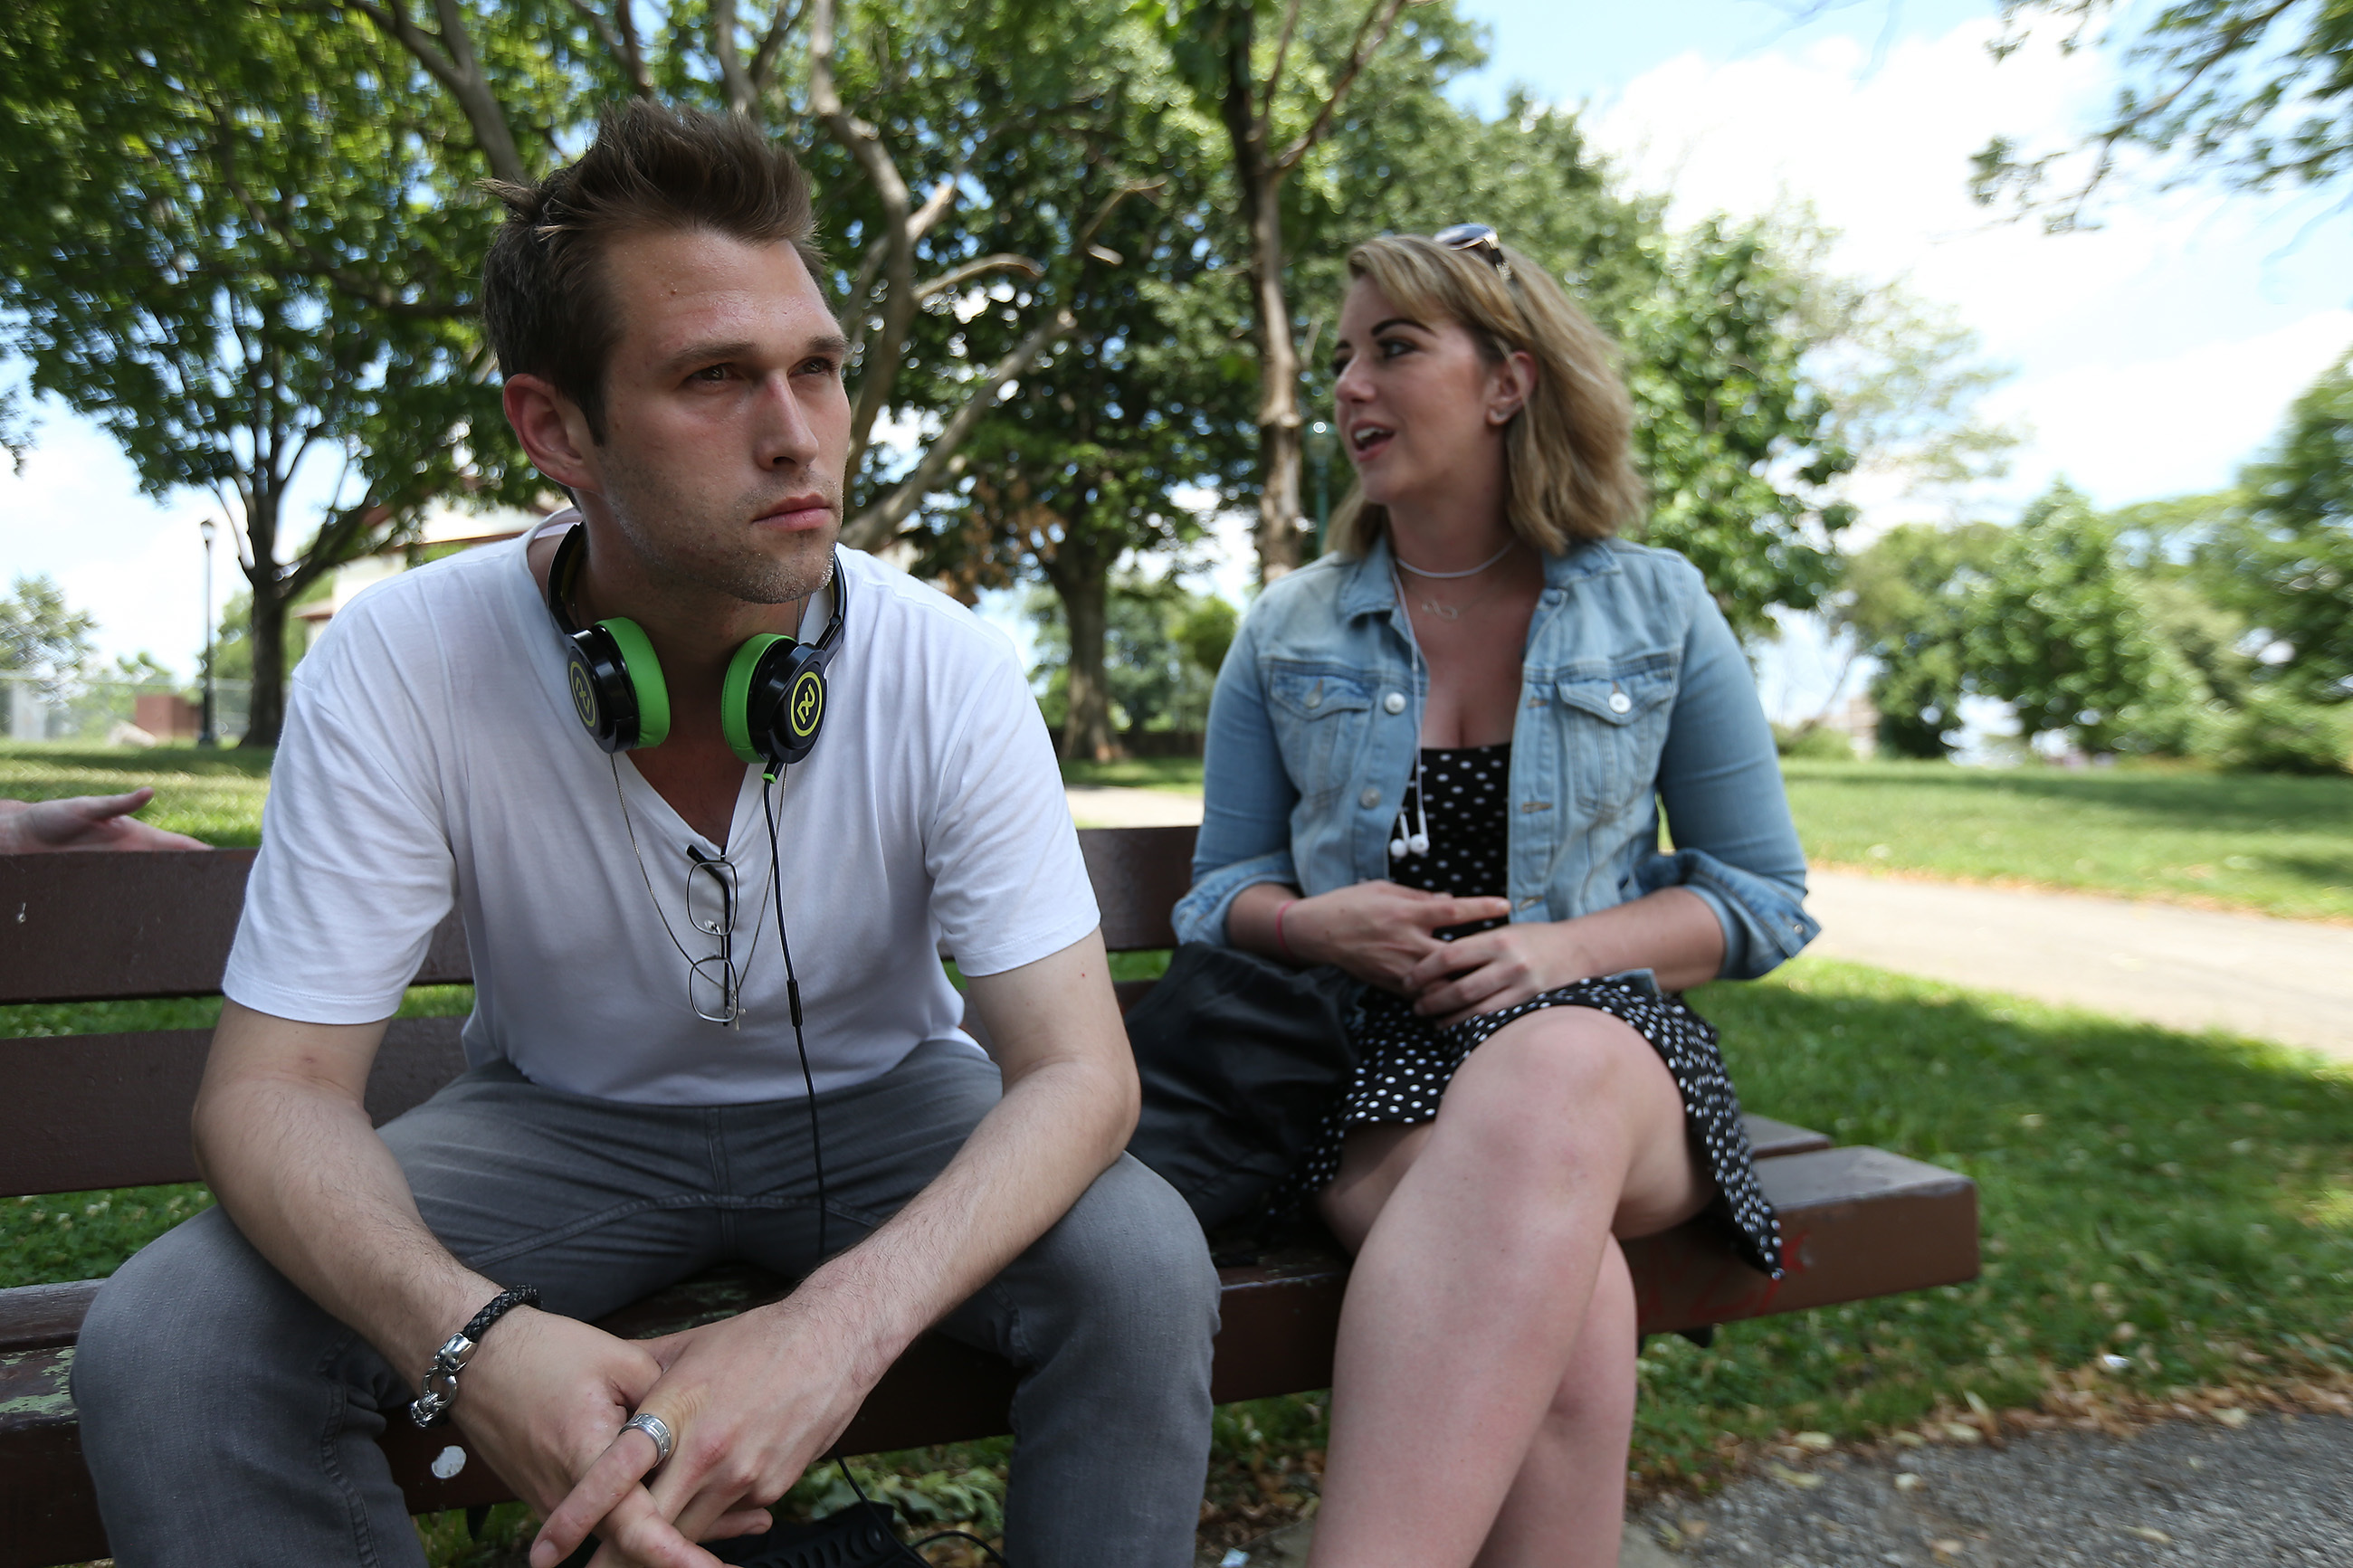 Ryan Sipler and Angela Caruso, sitting on a bench in McPherson Square, wound up in Philly chasing heroin and are now in treatment.